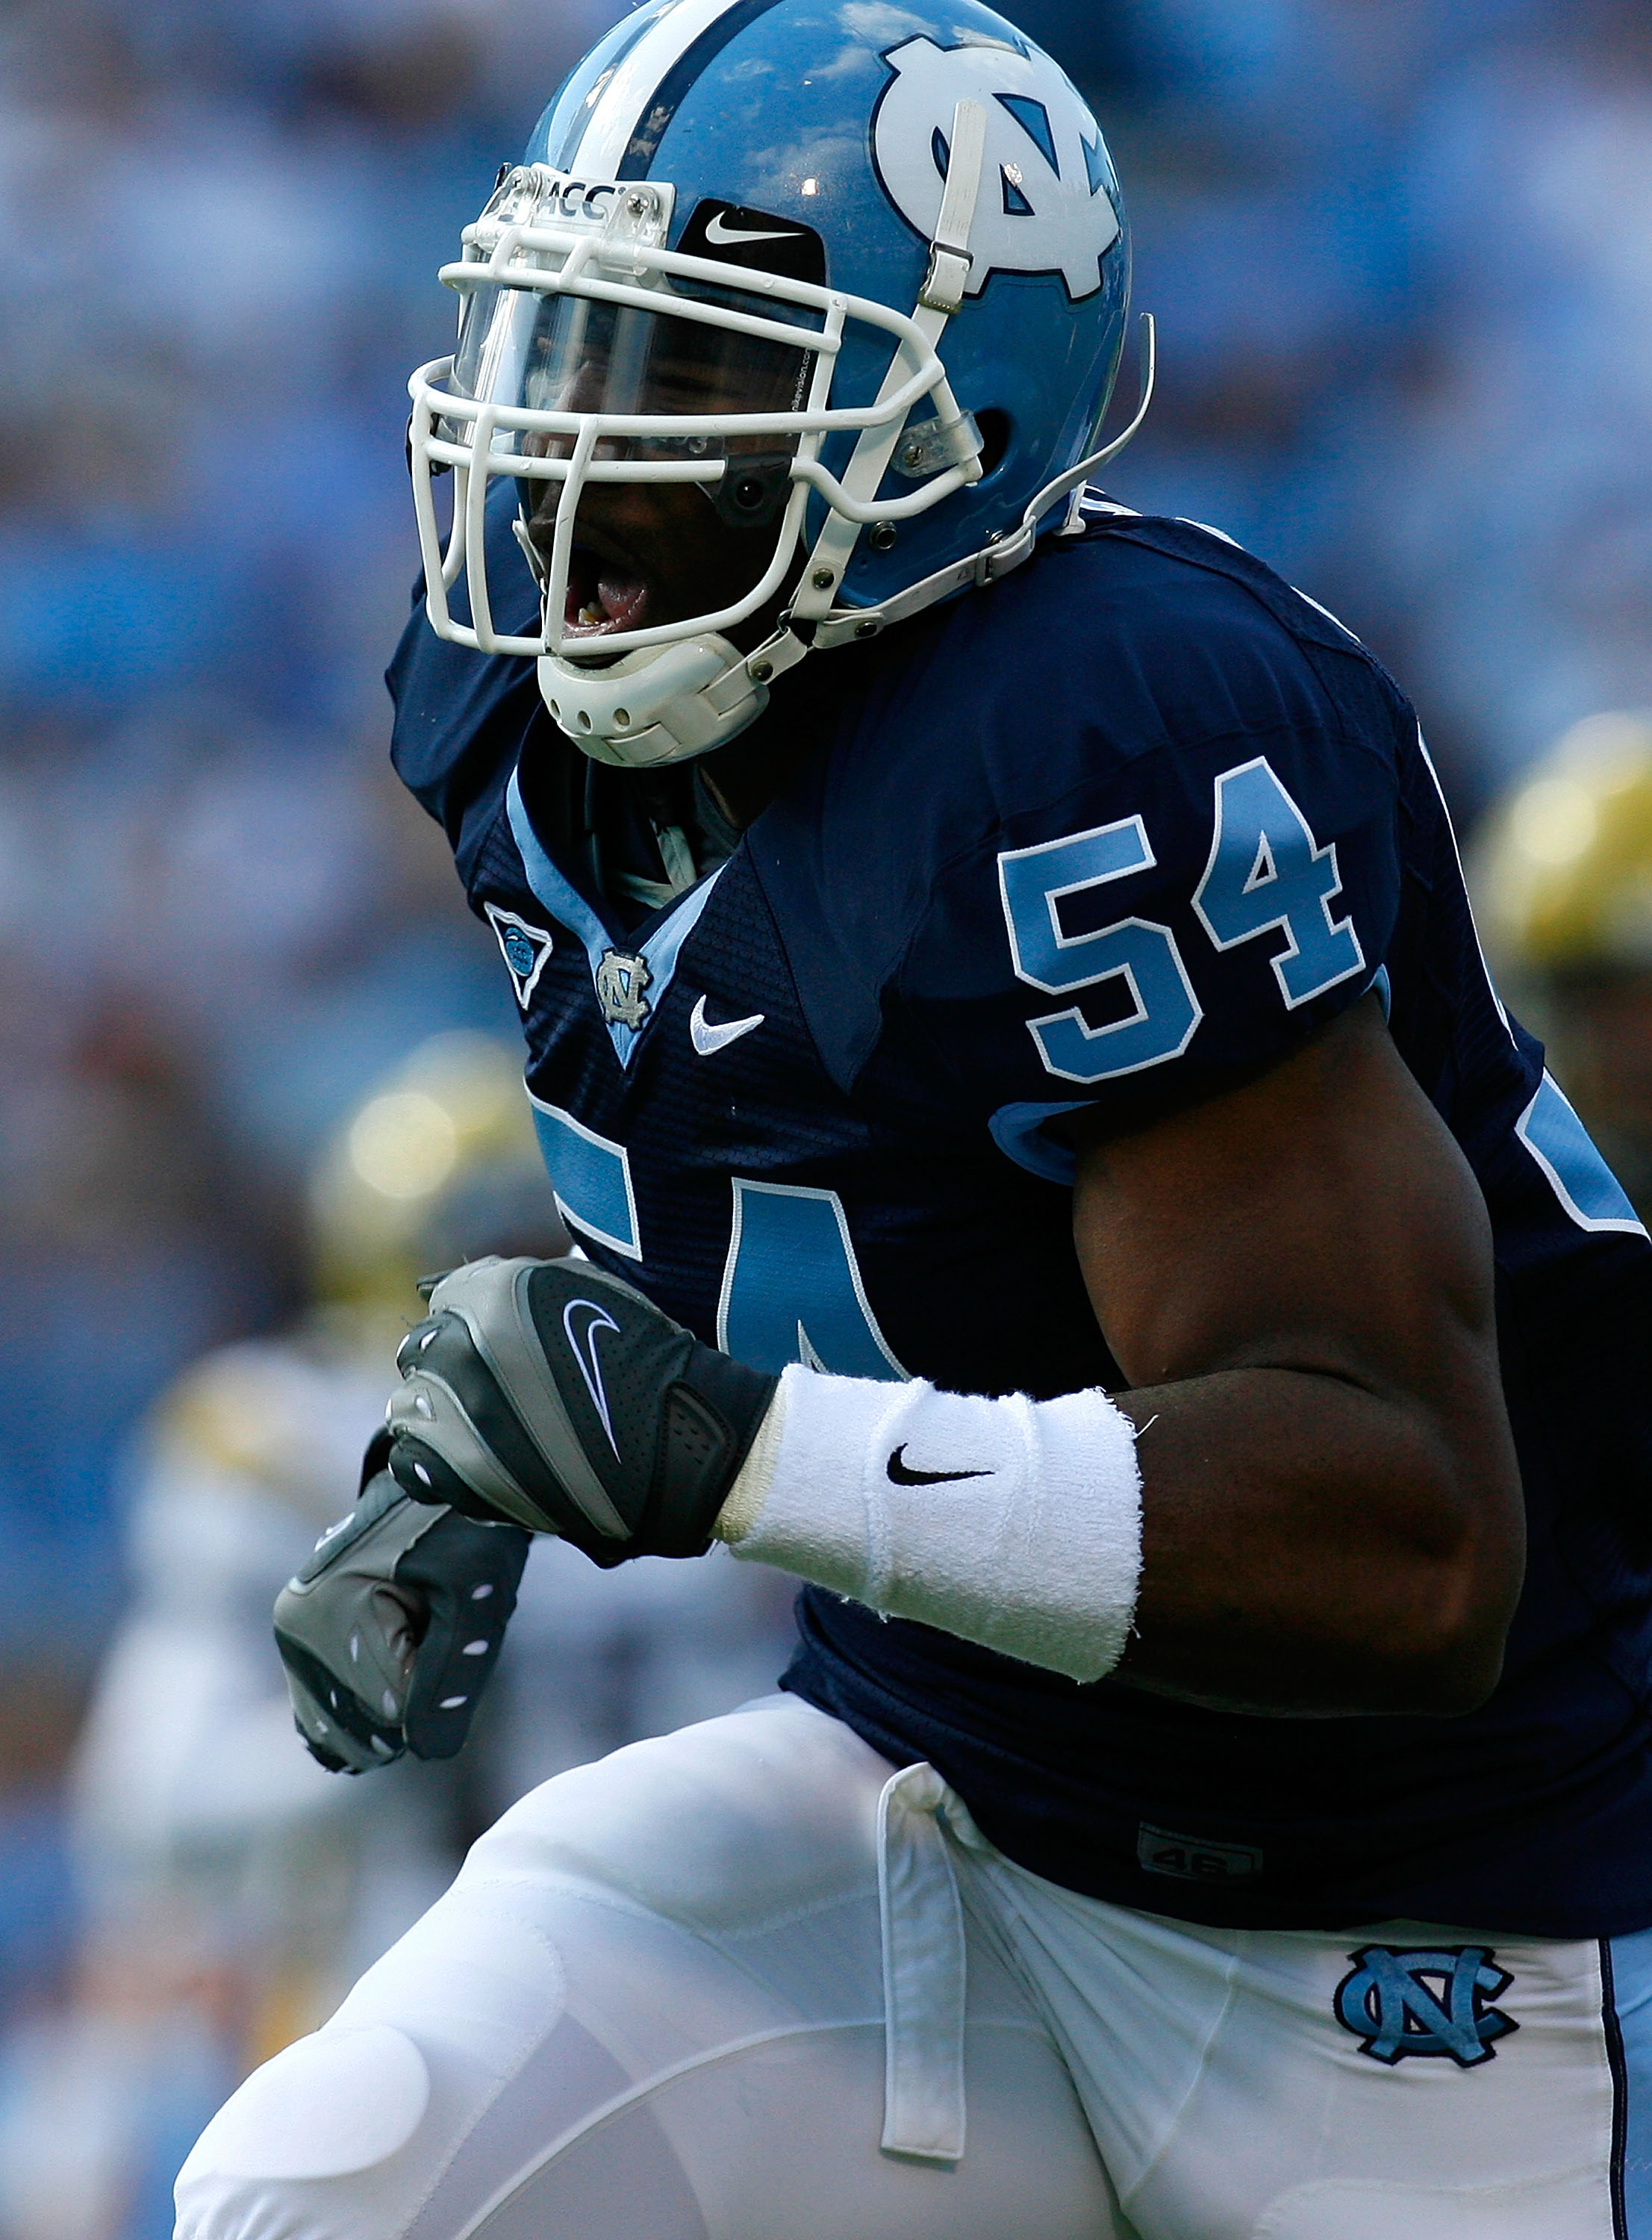 CHAPEL HILL, NC - NOVEMBER 08:  Linebacker Bruce Carter #54 of the North Carolina Tar Heels reacts after a defensive stop against the Georgia Tech Yellow Jackets during the game at Kenan Stadium on November 8, 2008 in Chapel Hill, North Carolina.  (Photo